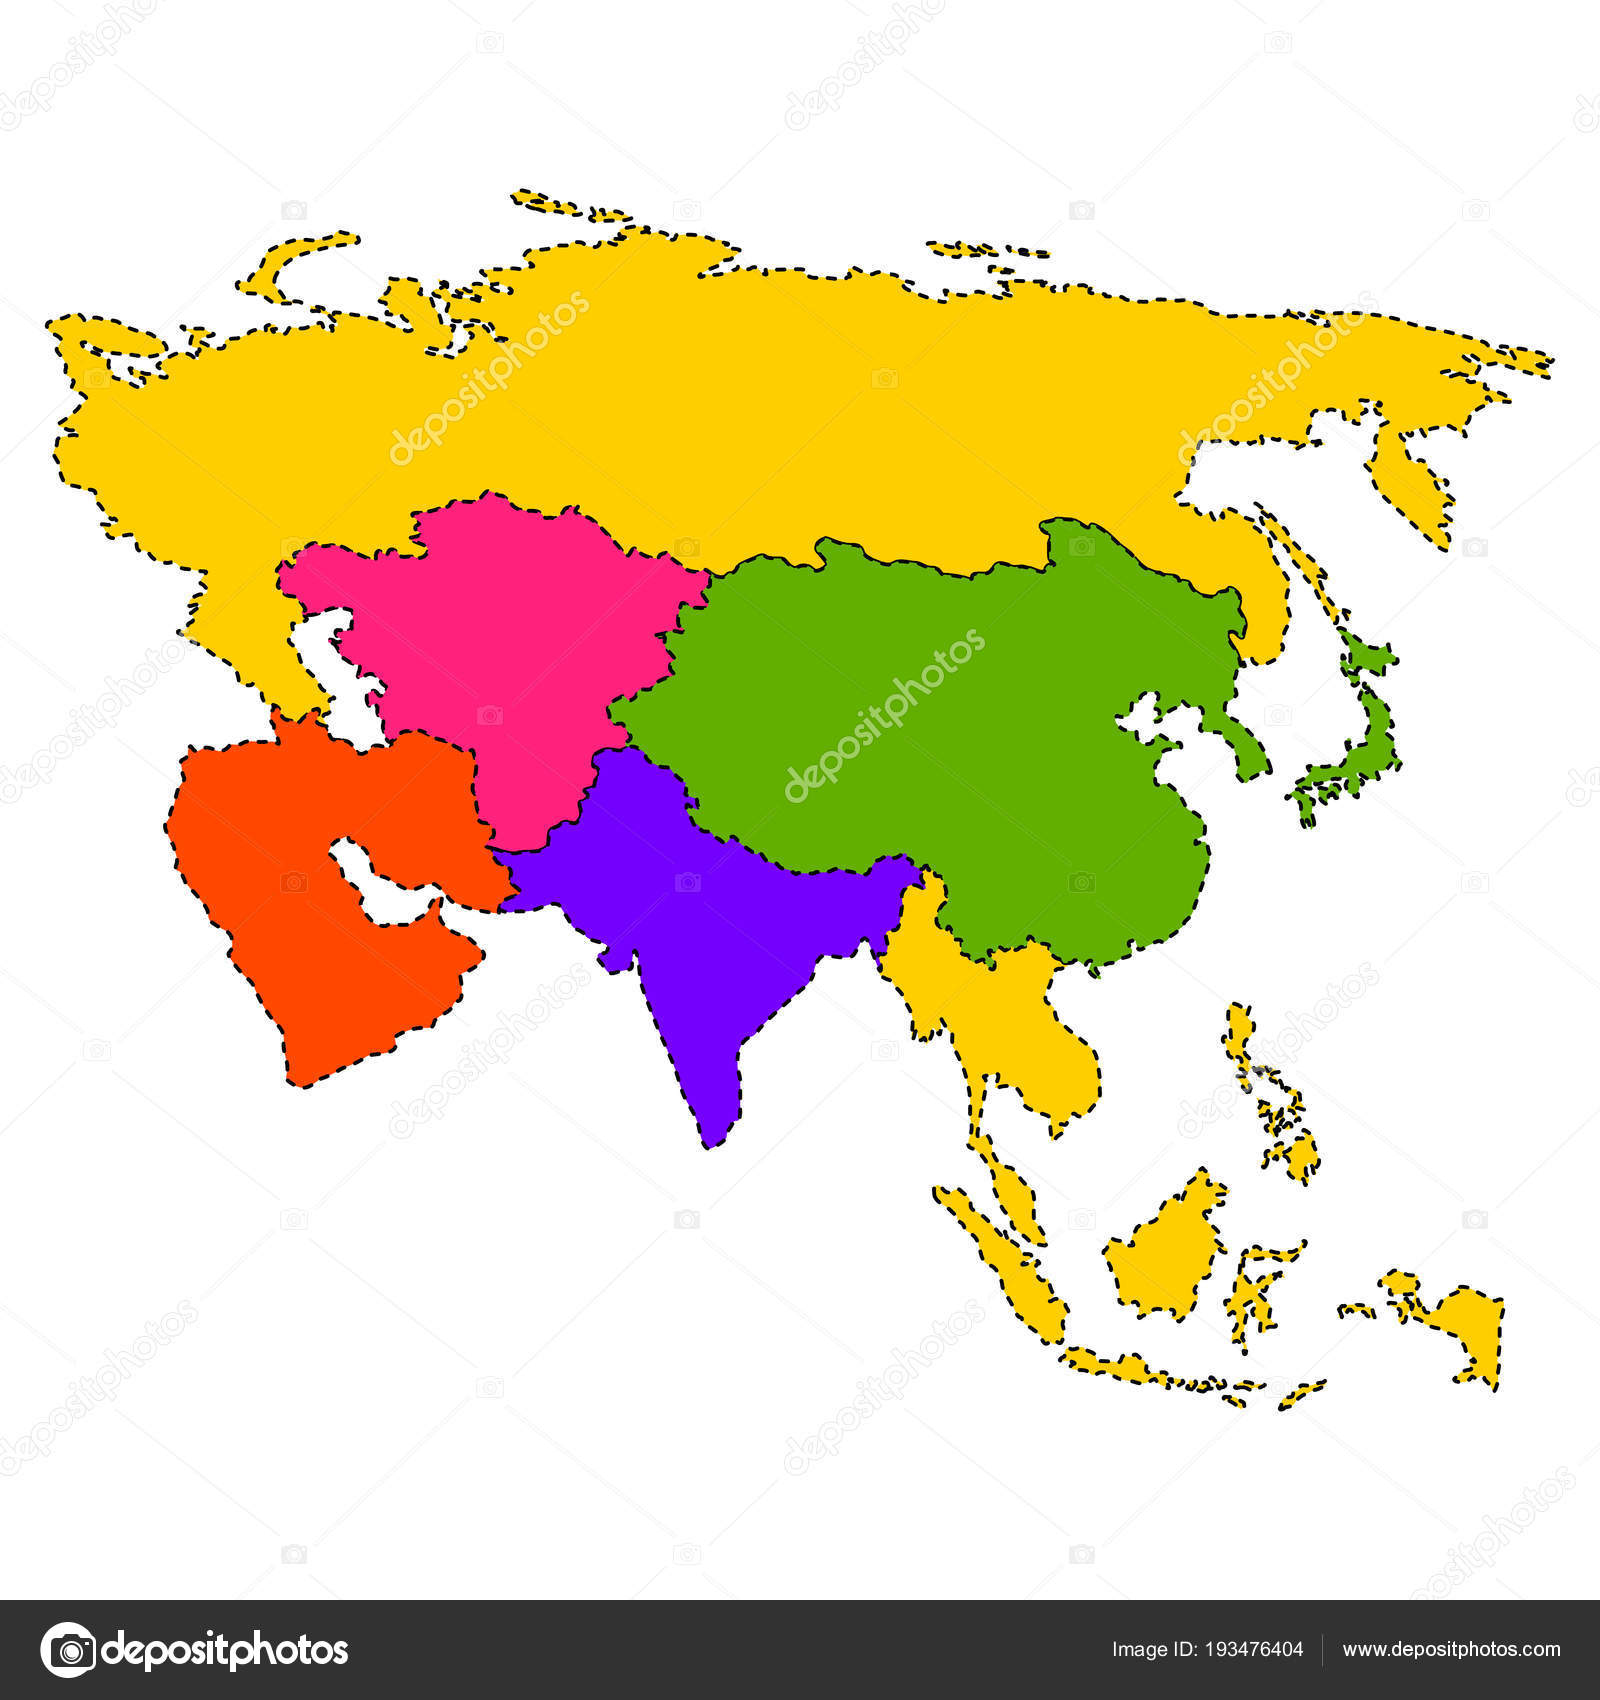 Political map of Asia — Stock Vector © JoKalar01 #193476404 on map of asia with asia, map of east asia only, mapa politica asia, lanzhou on a political map of asia, map of asia and america, 1940s map of europe and asia, map od asia, map of asia 2013, full map of asia, map of asia countries, whole map of asia,